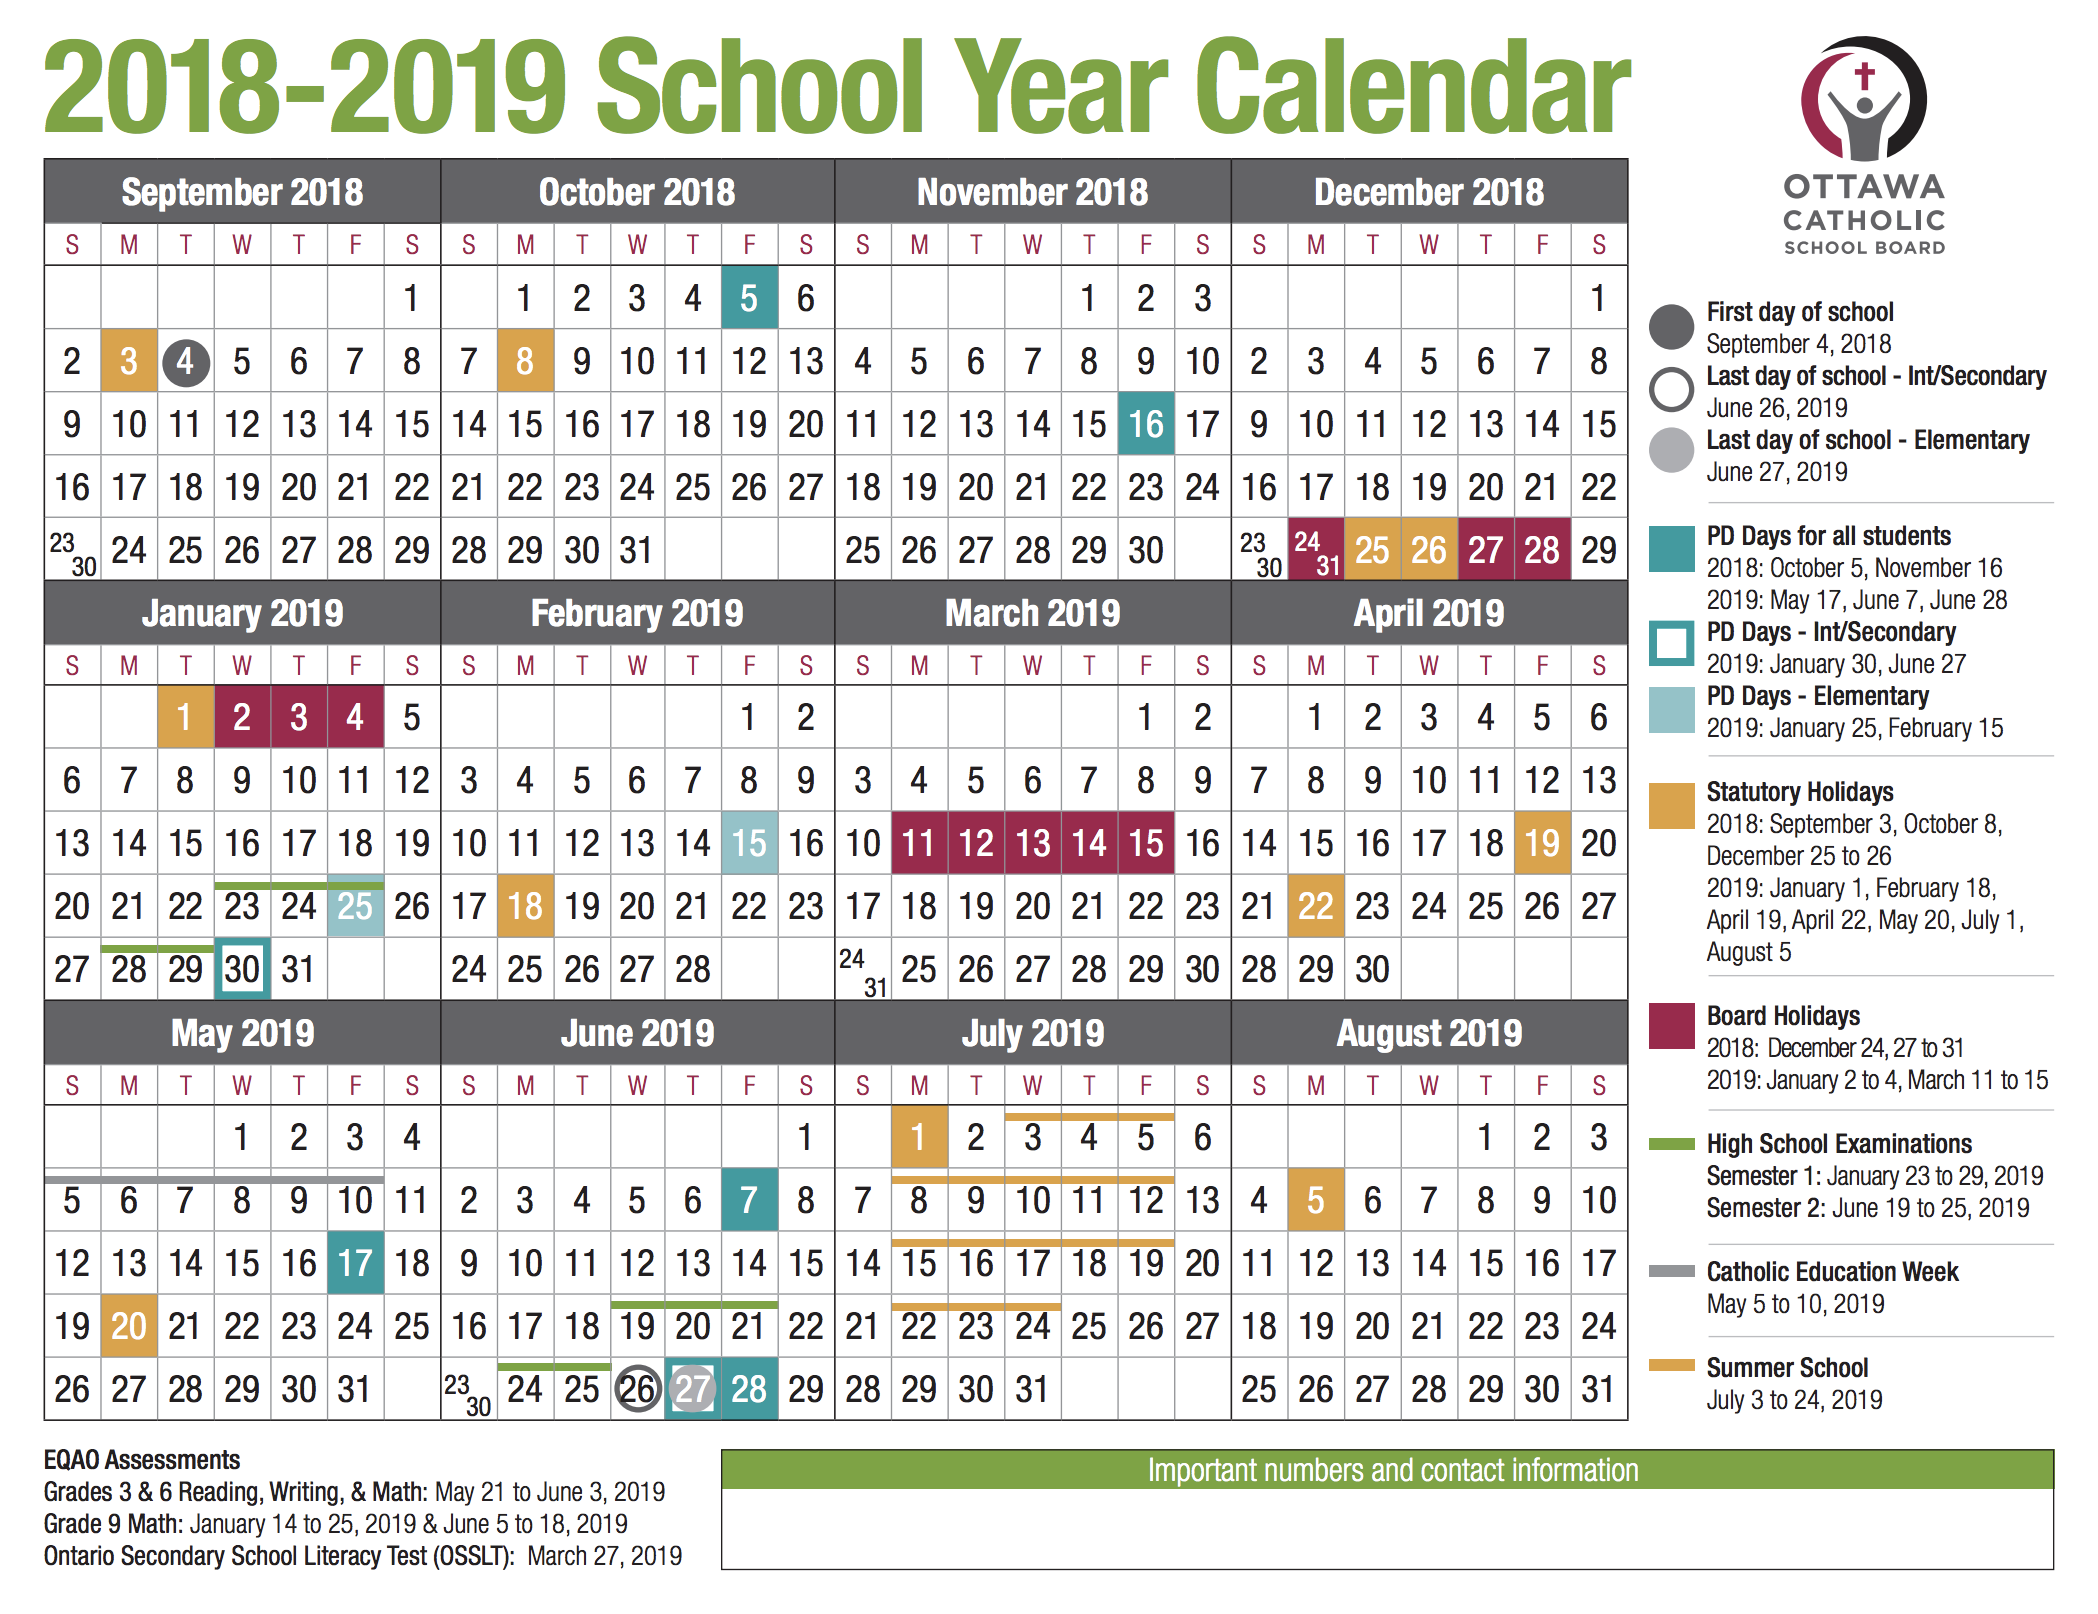 ocsb school year calendar image - Christmas Break Dates